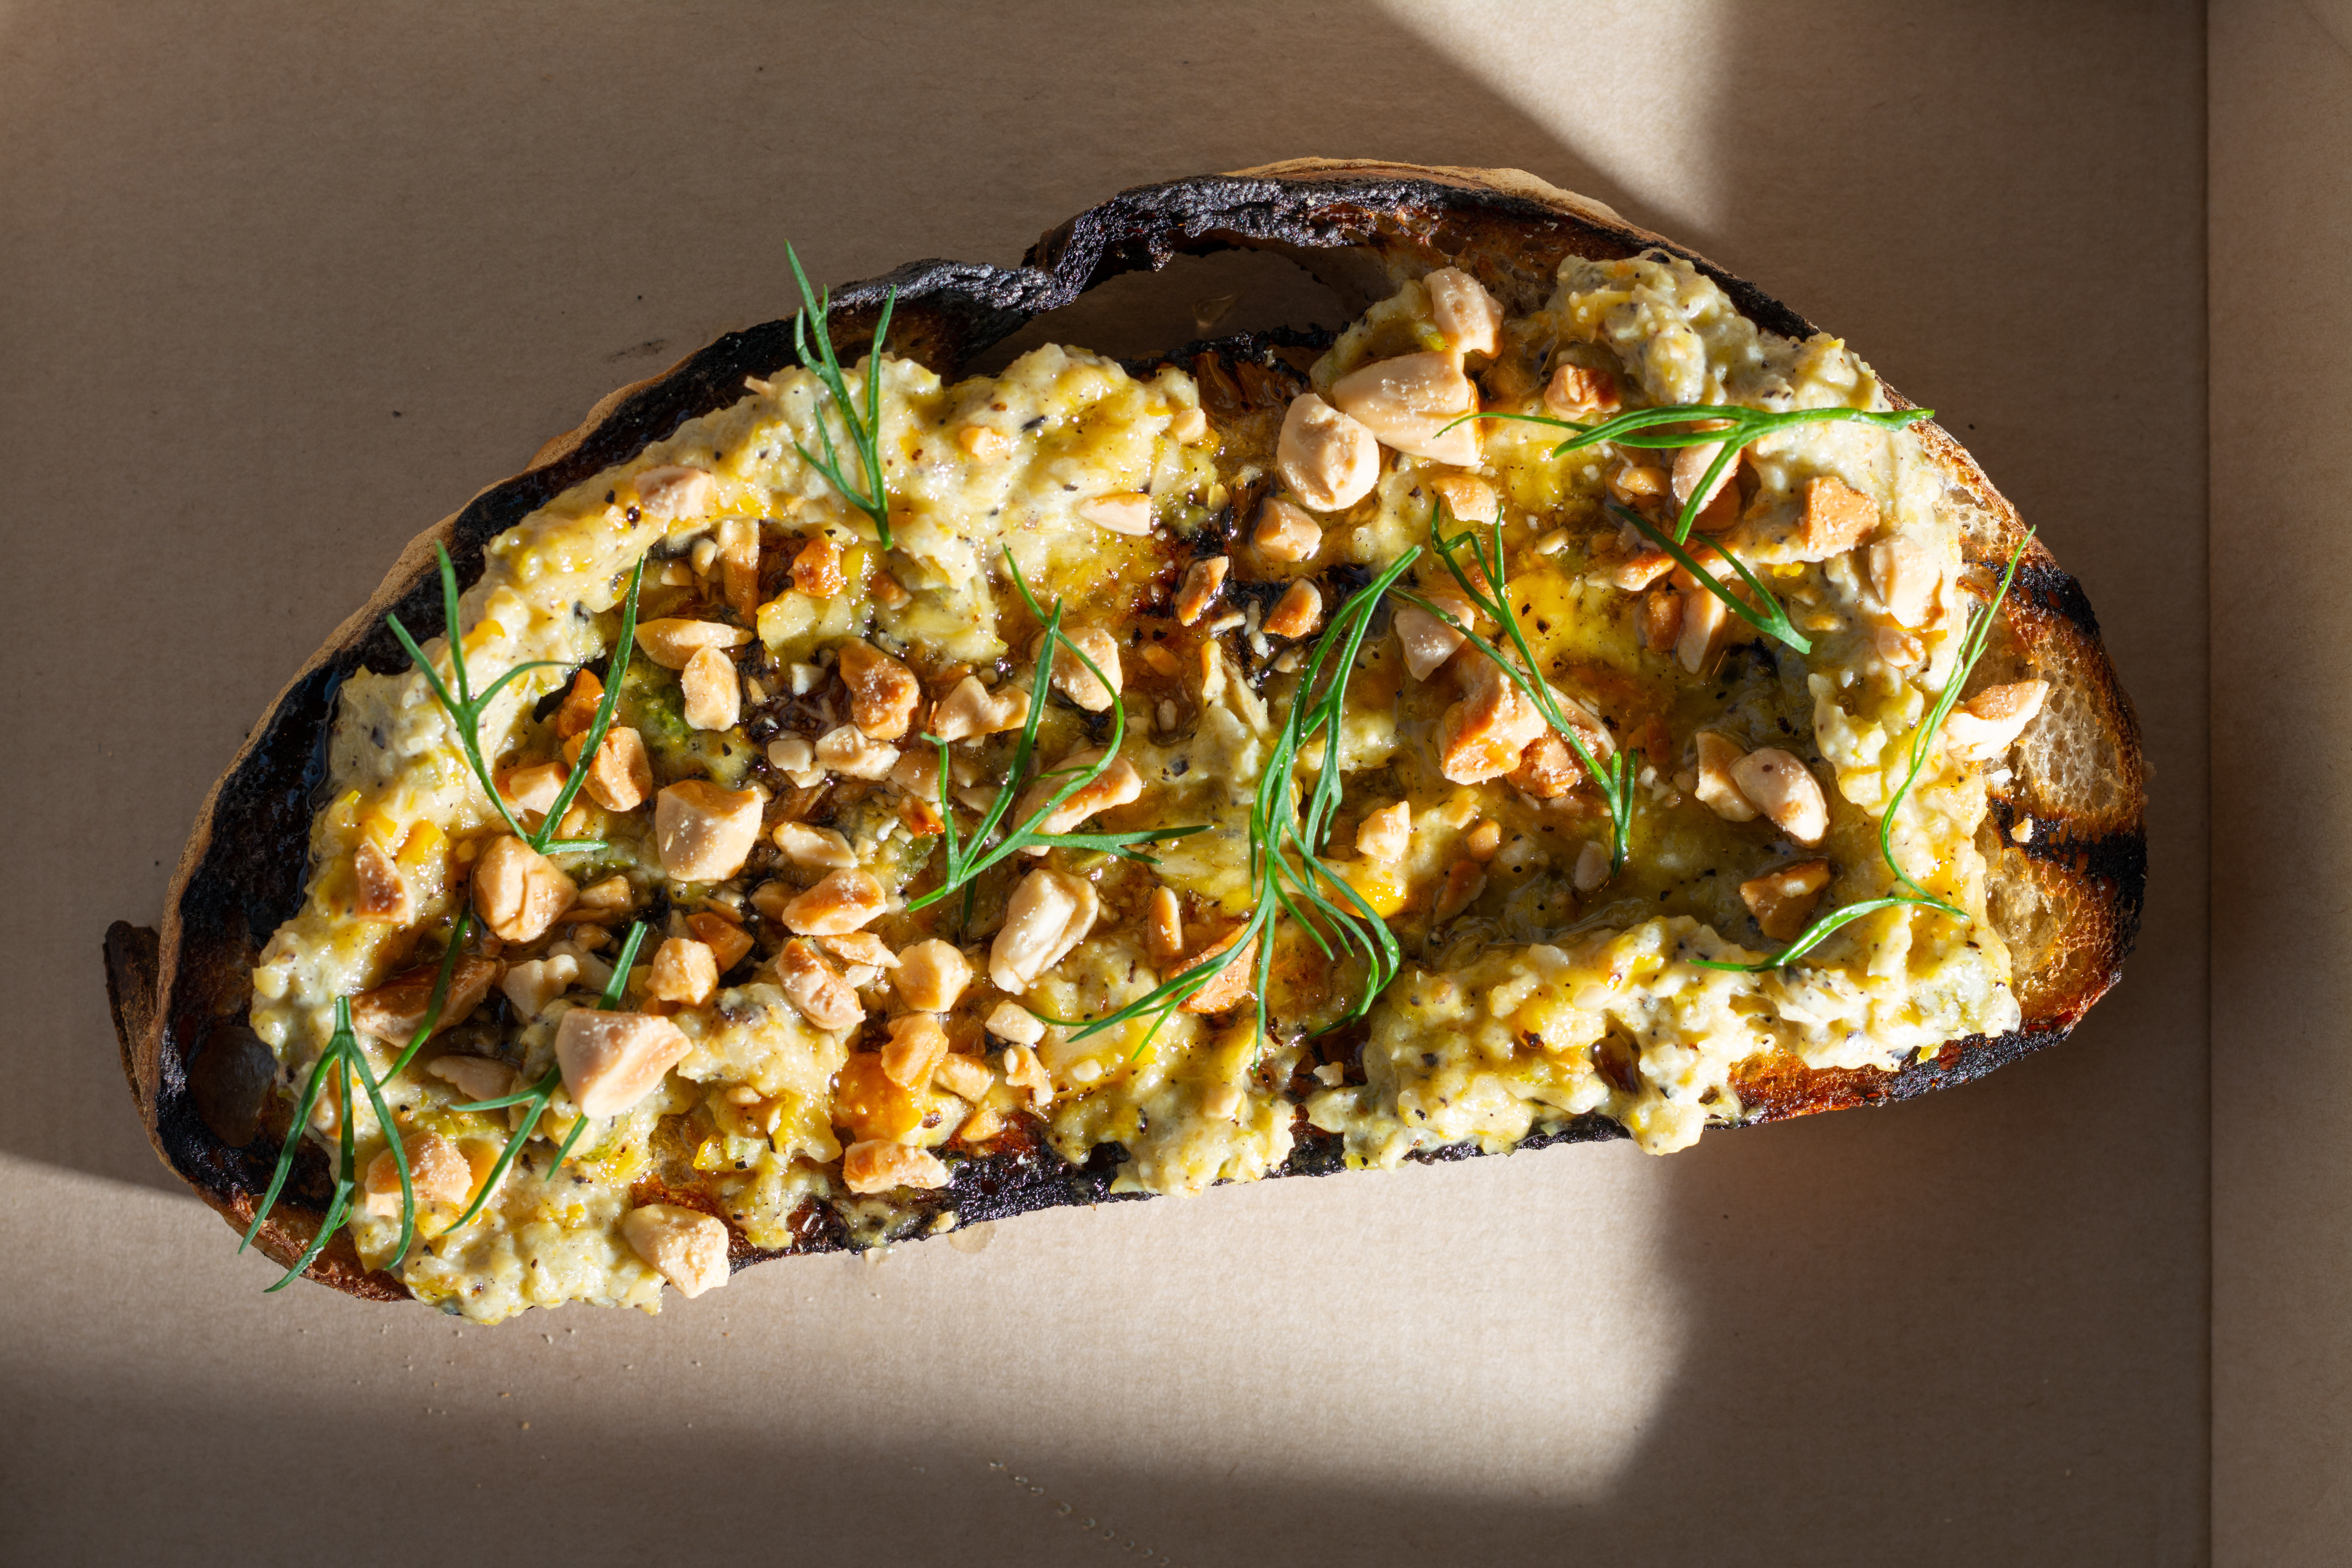 toast with mushed squash and and chopped almonds